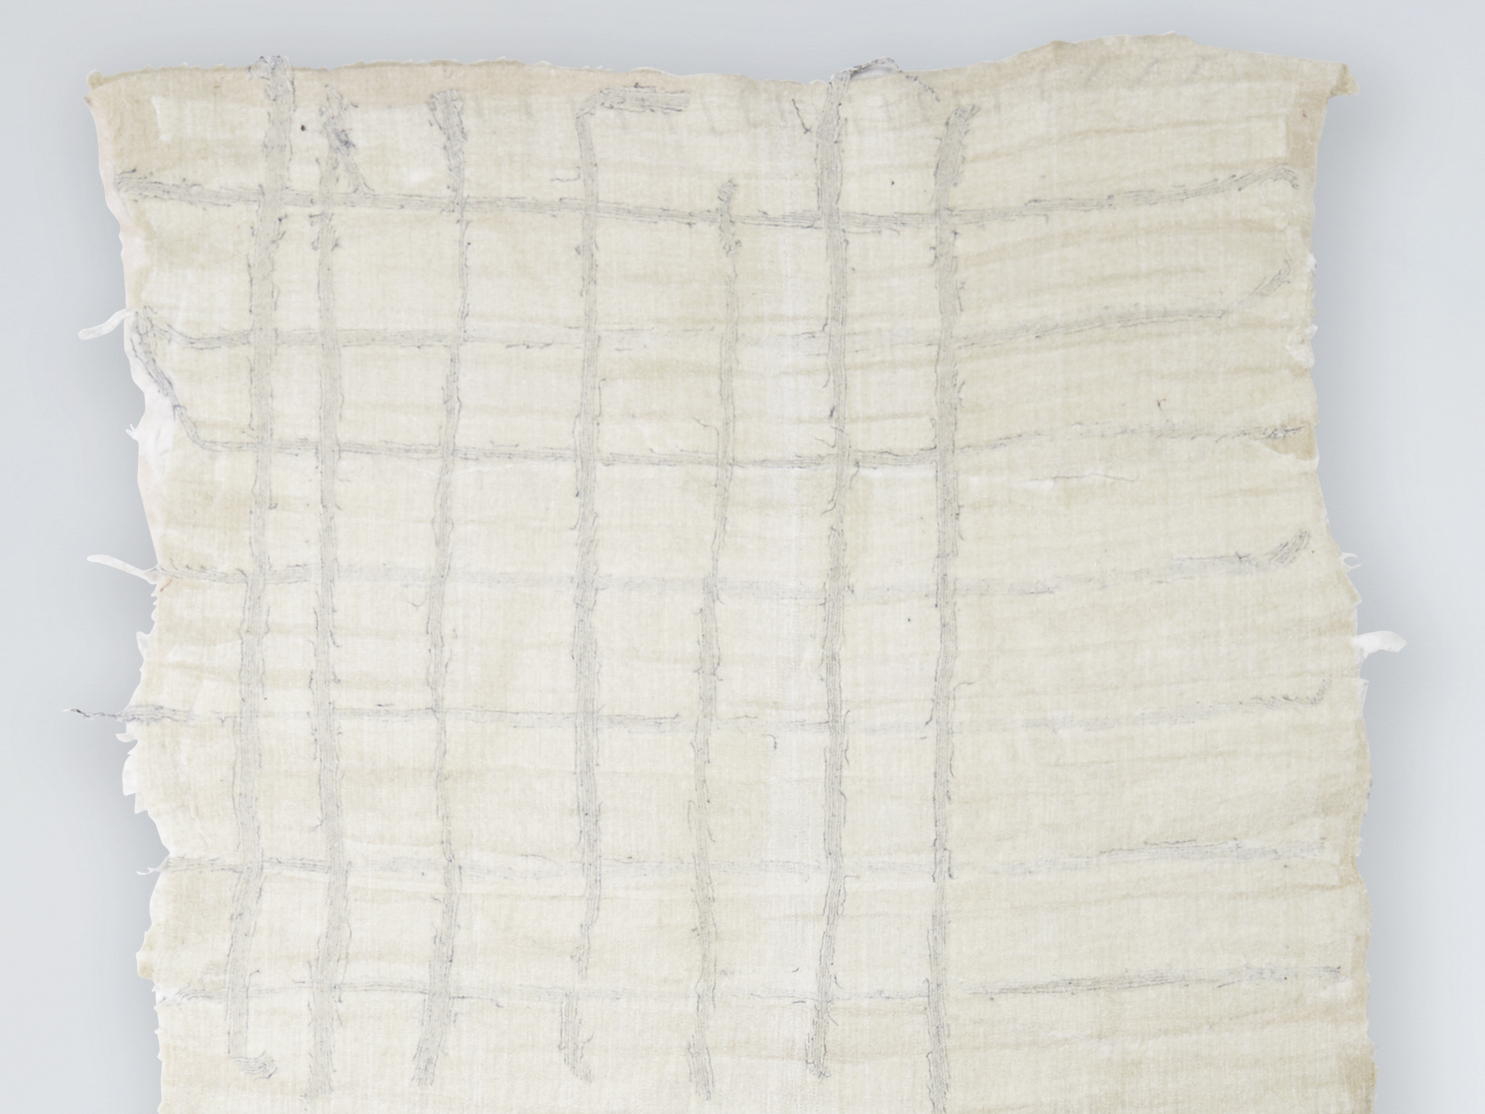 WHITE_LINES_FROM_TOP_0001 D.jpg